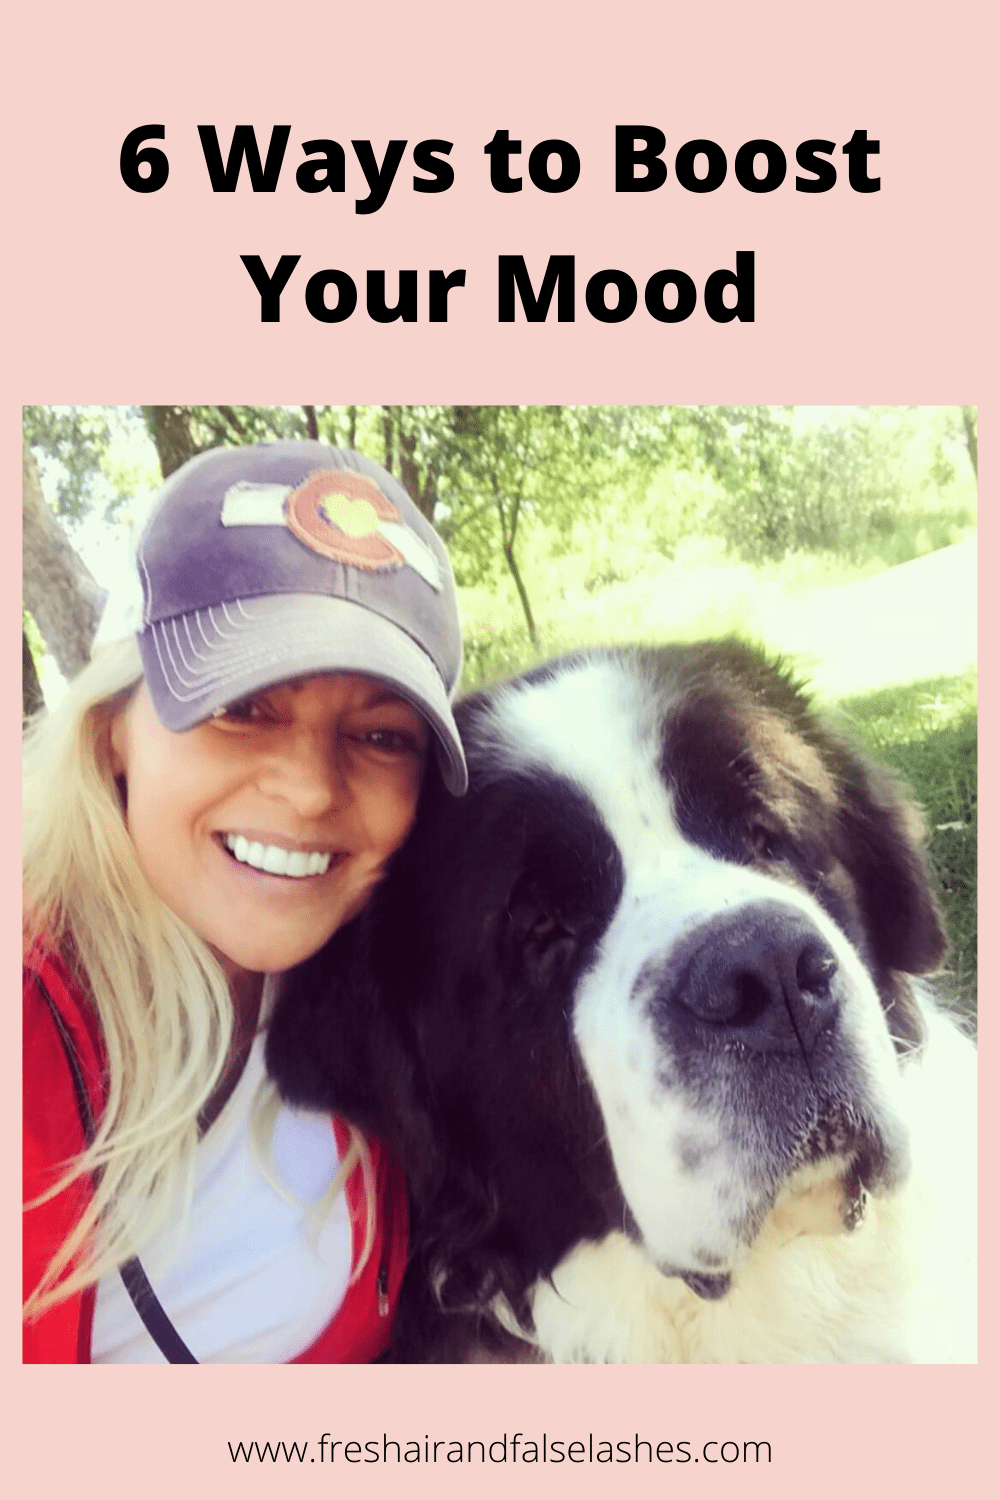 6 ways to boost your mood!